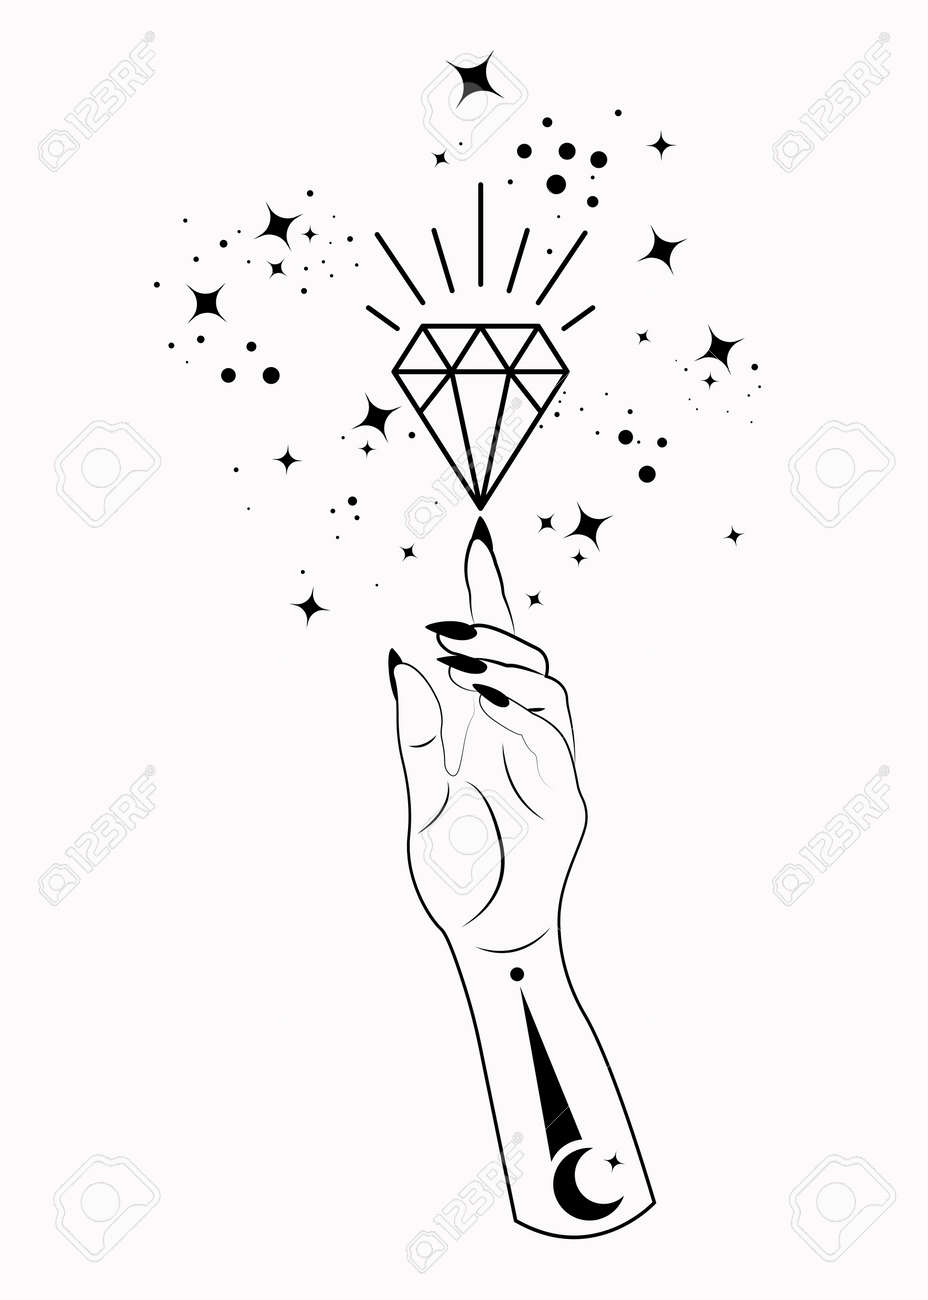 Mystical Woman Hand alchemy esoteric magic space stars, crystal symbol, Sacred Geometry. Boho style Logo in black outline tattoo icon. Spiritual occultism mystic wicca sign. Vector isolated on white - 173569562